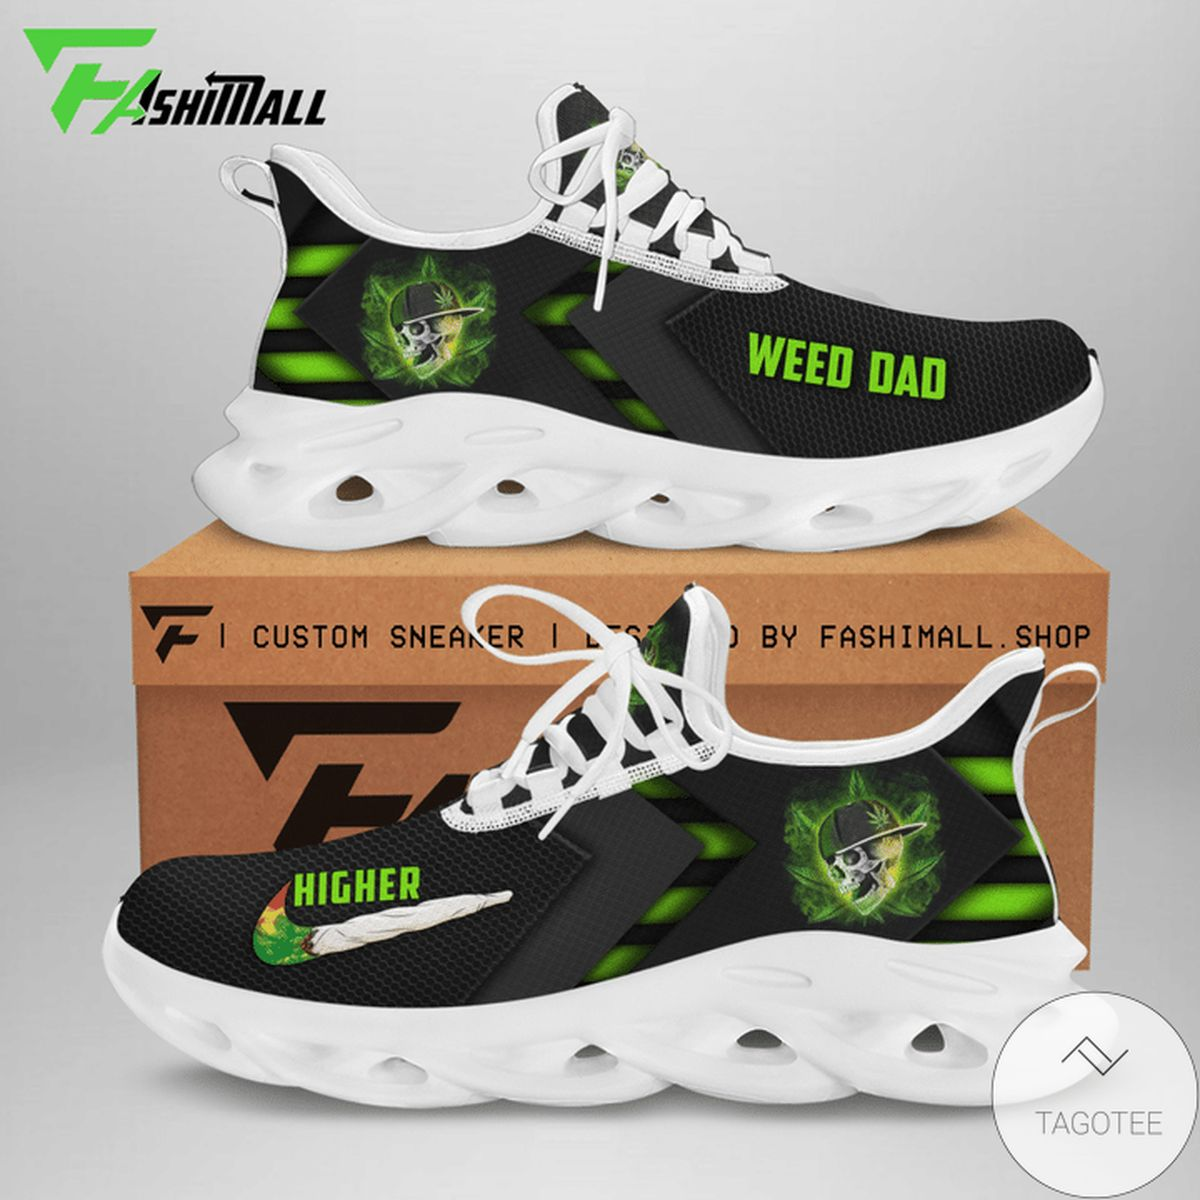 Great artwork! We Dad Cannabist Skull Max Soul Shoes